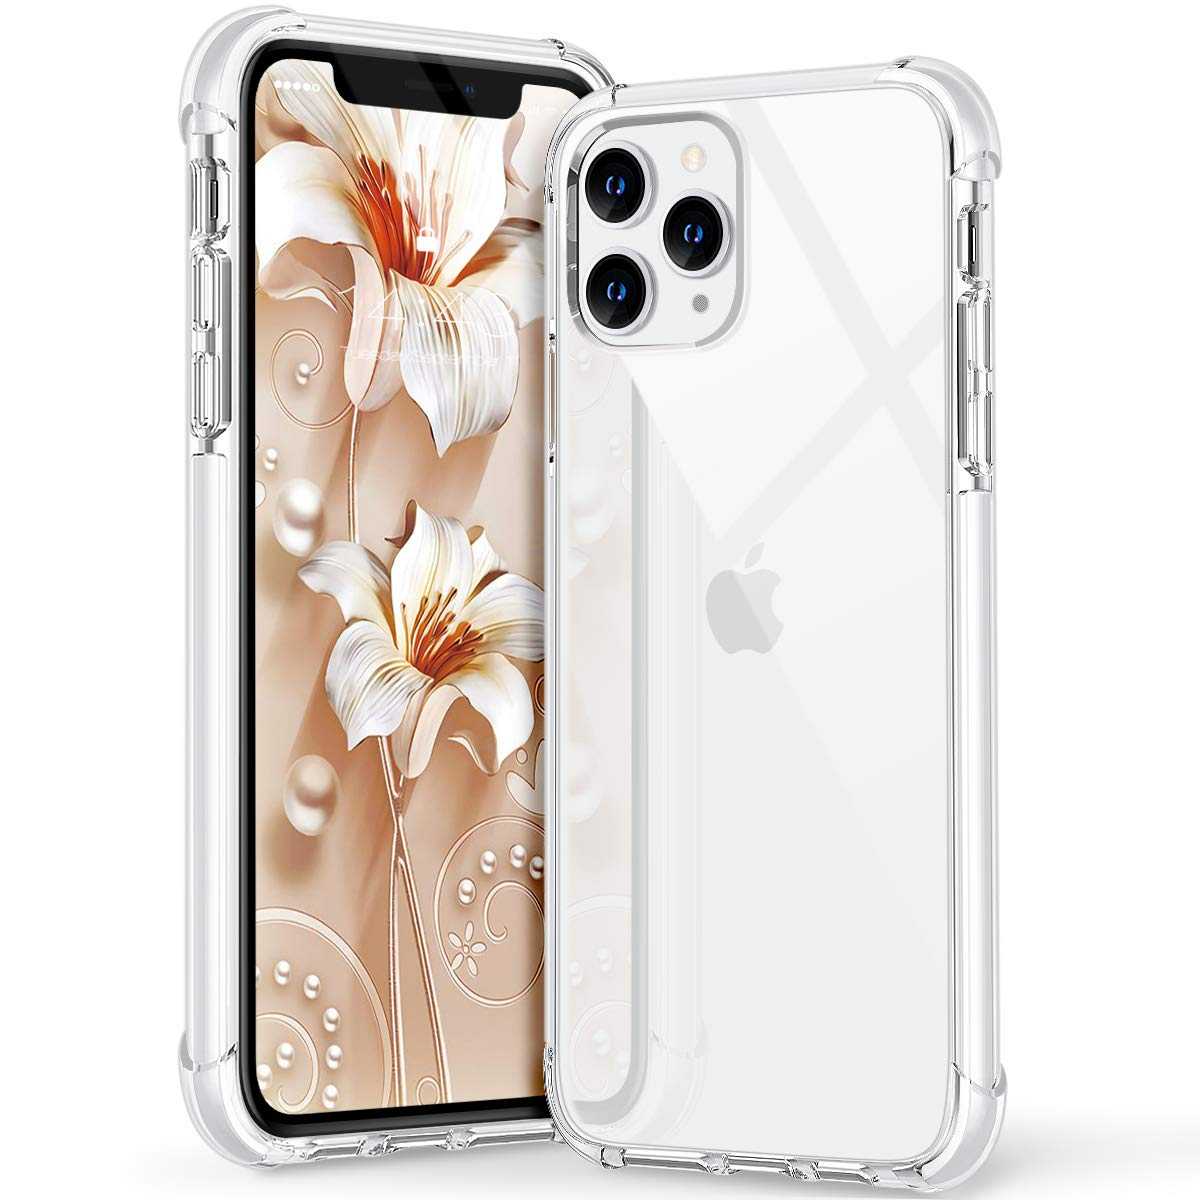 MATEPROX 11 Pro Max Case Clear Heavy Duty Protective Crystal Back Cover with Shockproof Bumper Case for iPhone 11 Pro Max 6.5 inch(Clear White)